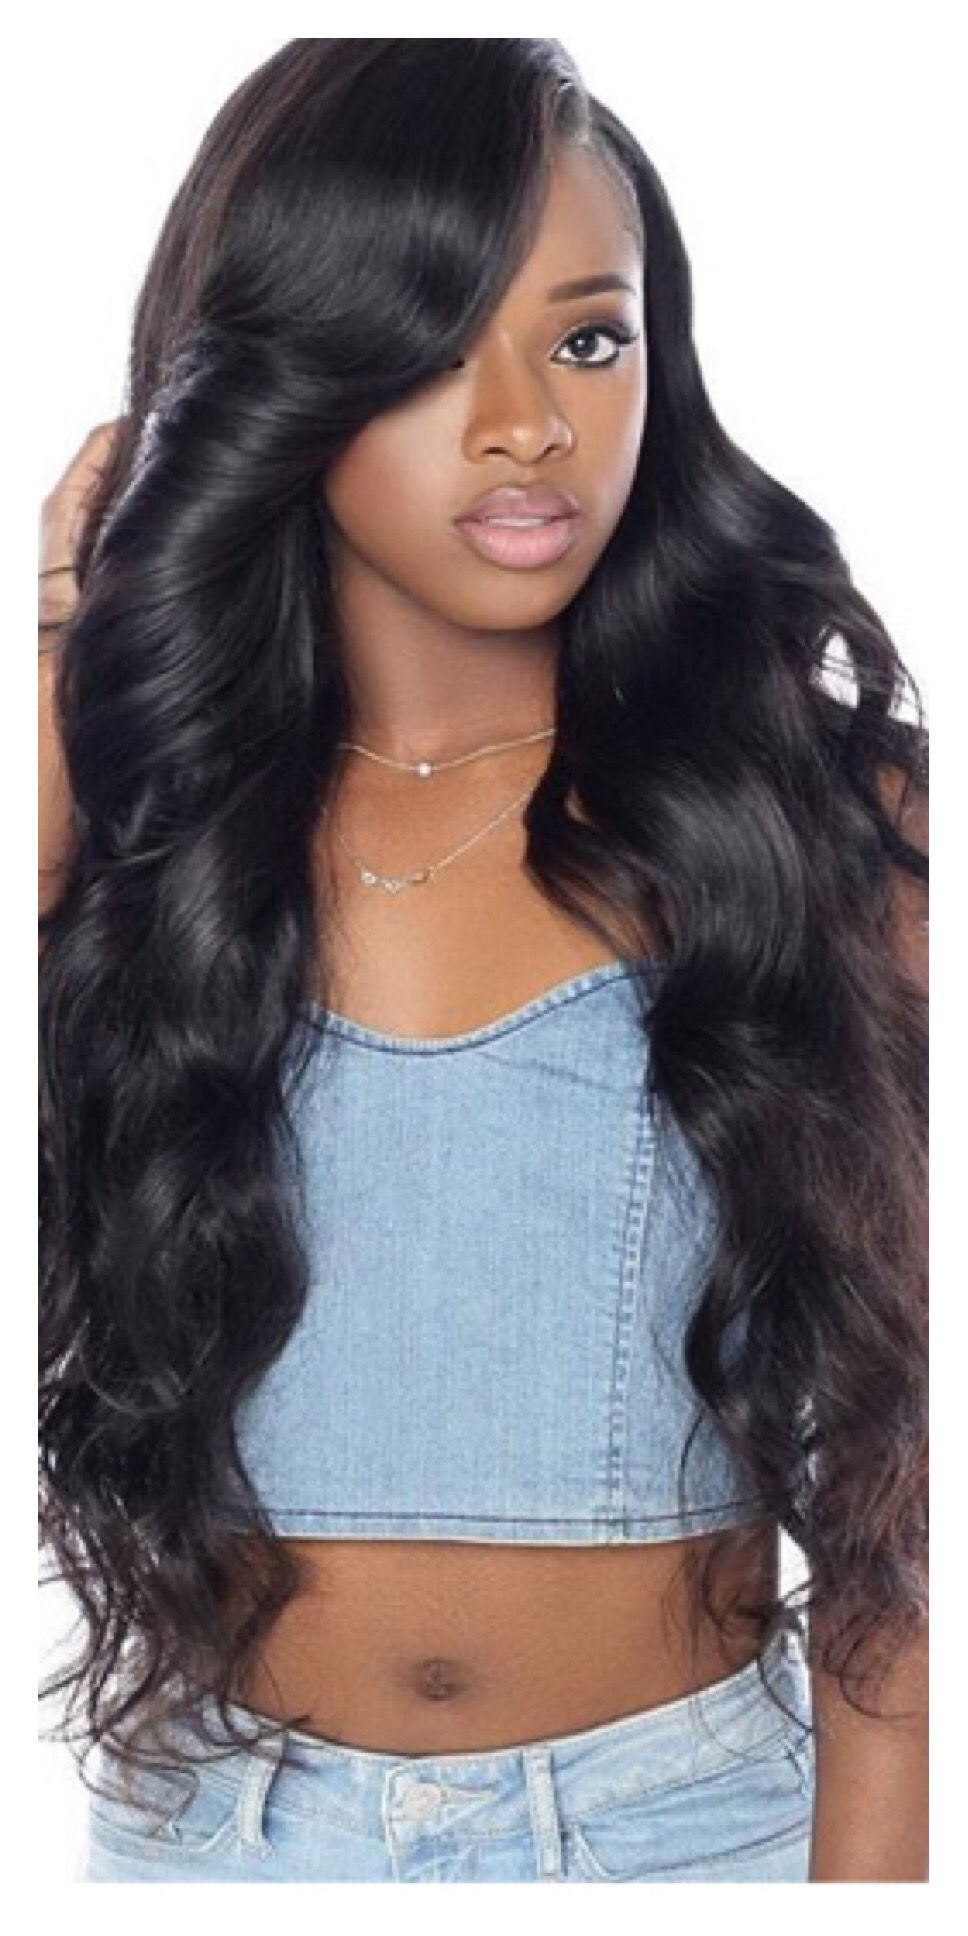 Like what you see follow me hair gallery USA 8 corp